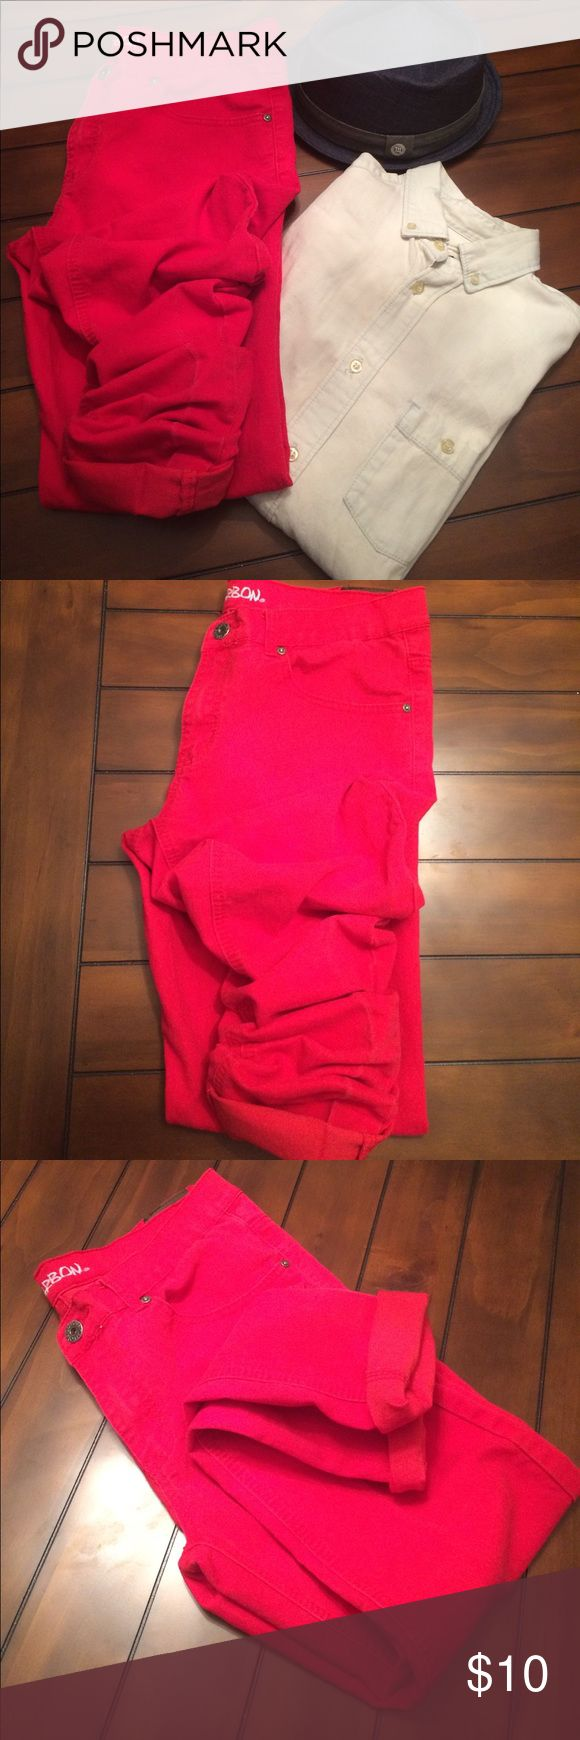 Rue21 skinny fit jeans 34x32 Make a bold statement with these red skinny jeans and make sure to pair it with your favorite neutral tee or button down for a nice casual look Rue21 Jeans Skinny